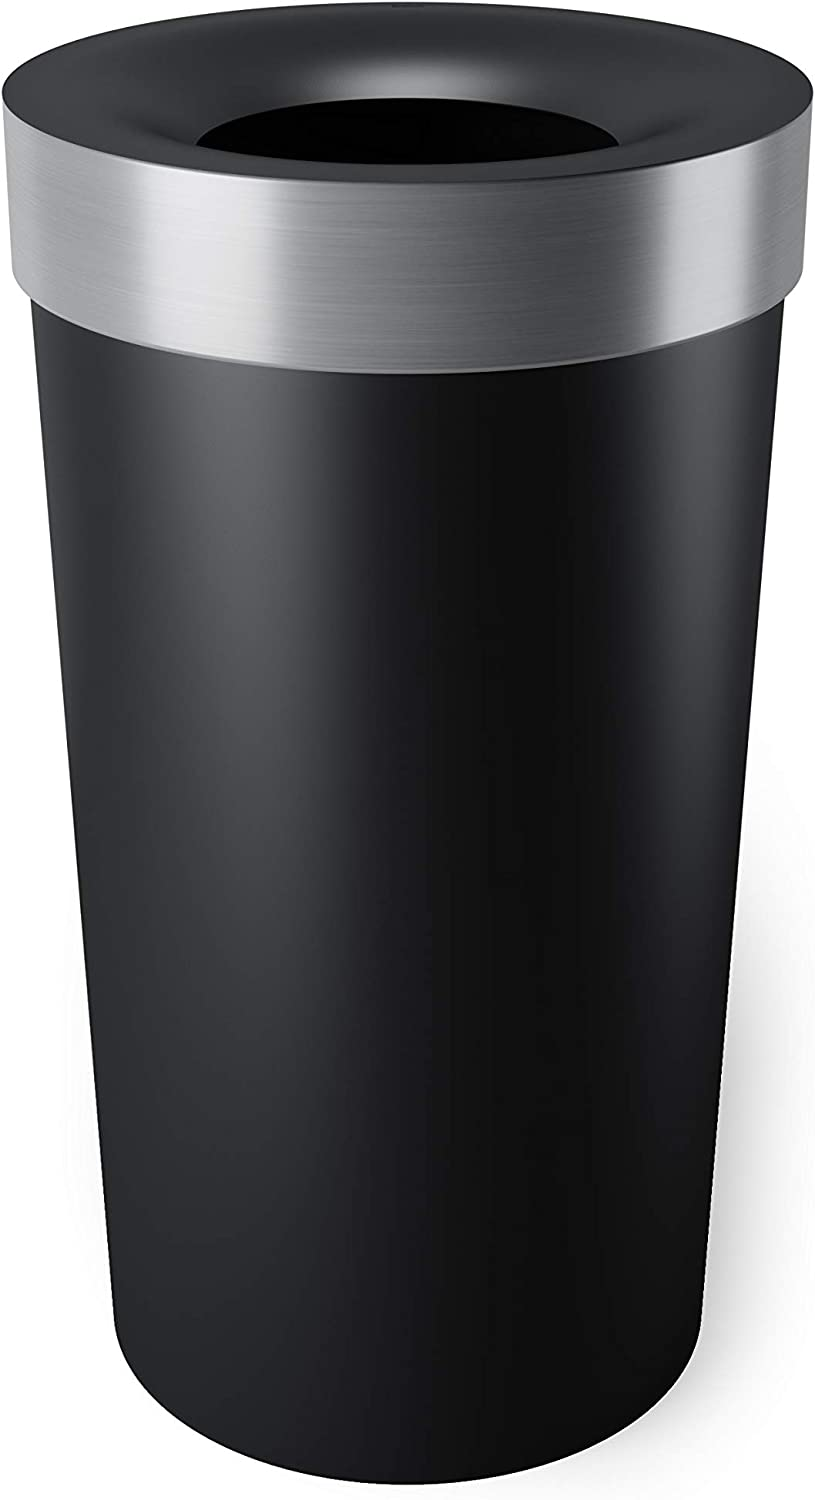 Umbra Vento Open Top 16.5-Gallon Large Trash Gifts Kitchen Ca Garbage Ranking TOP2